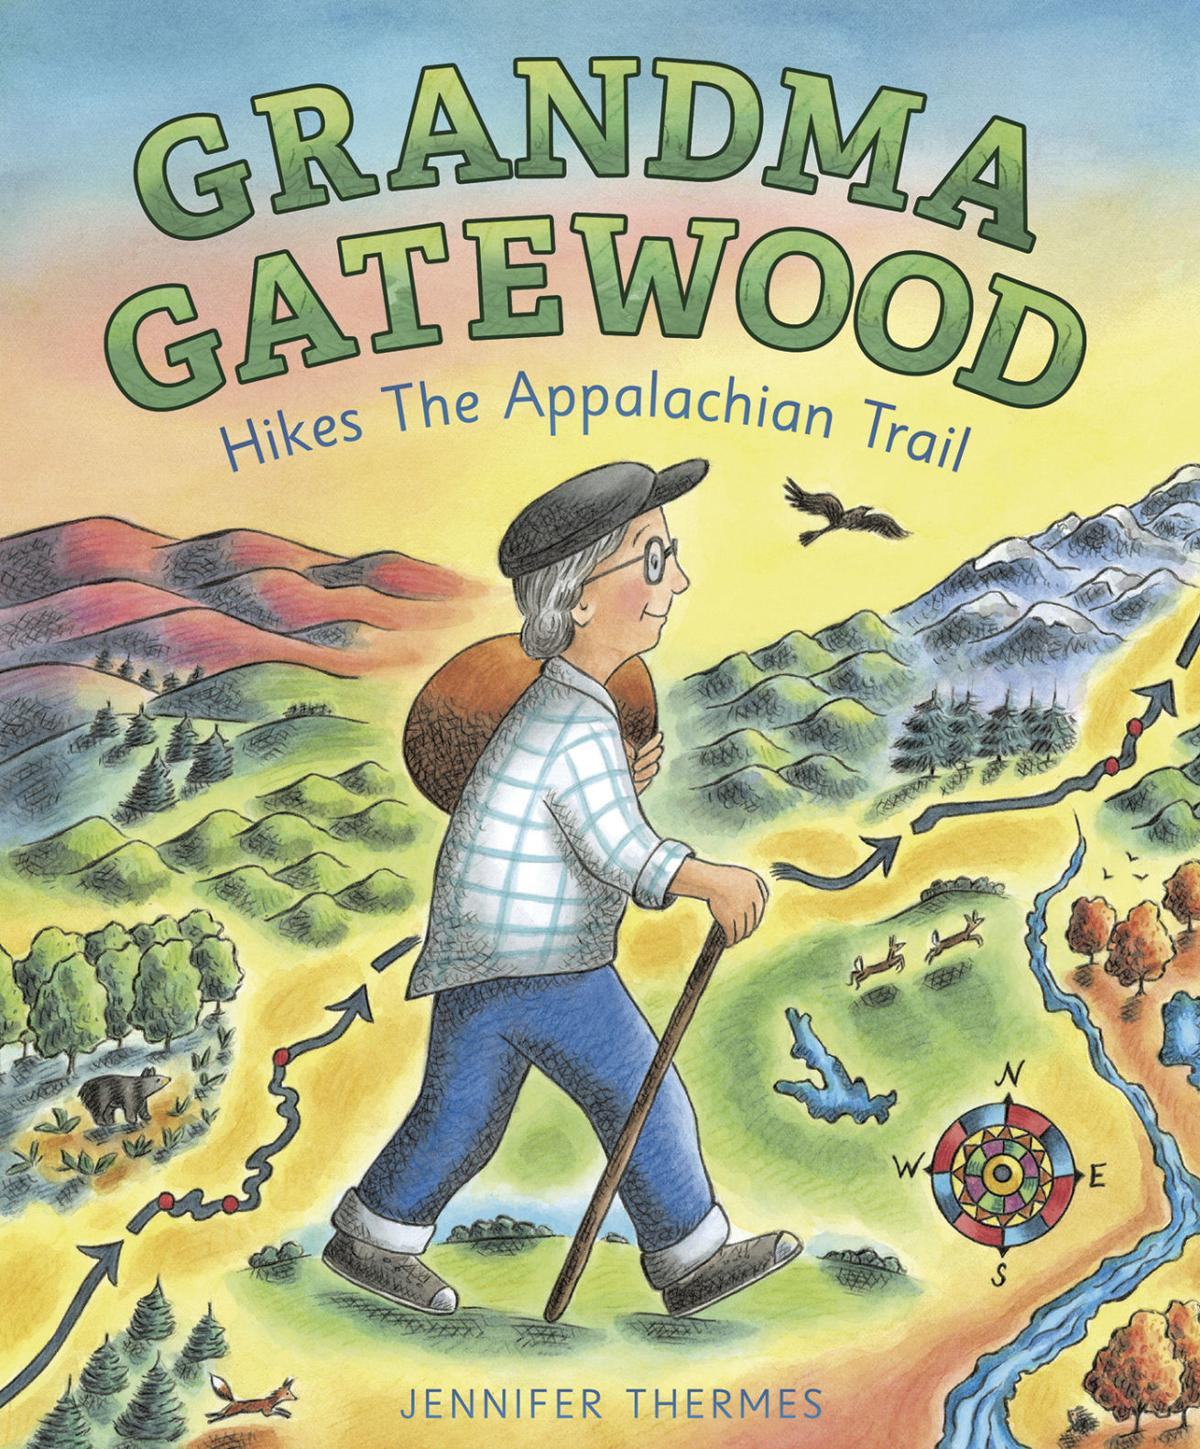 'Grandma Gatewood hikes the Appalachian Trail'